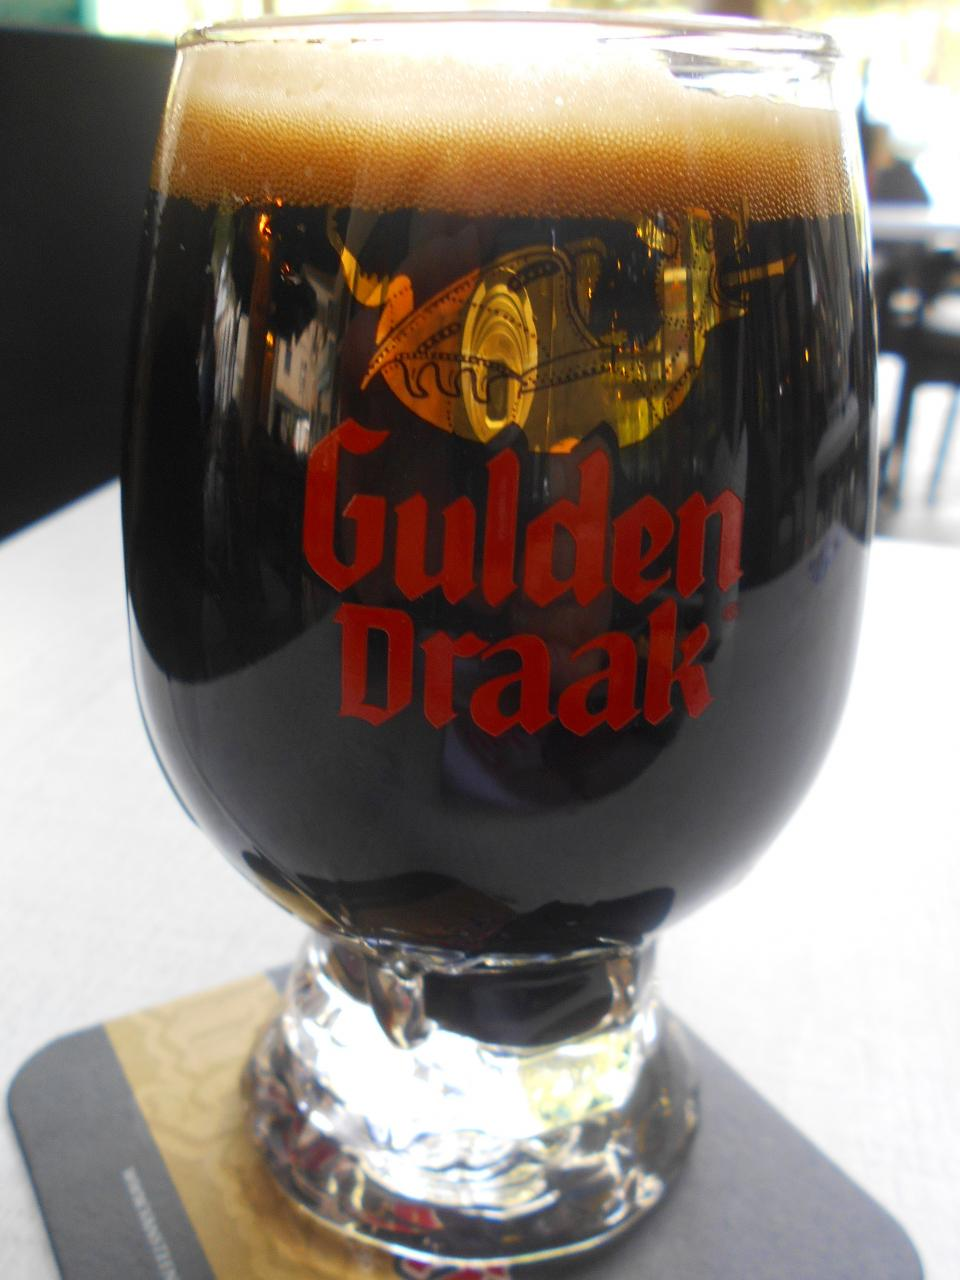 The Imperial stout, a superb black beer